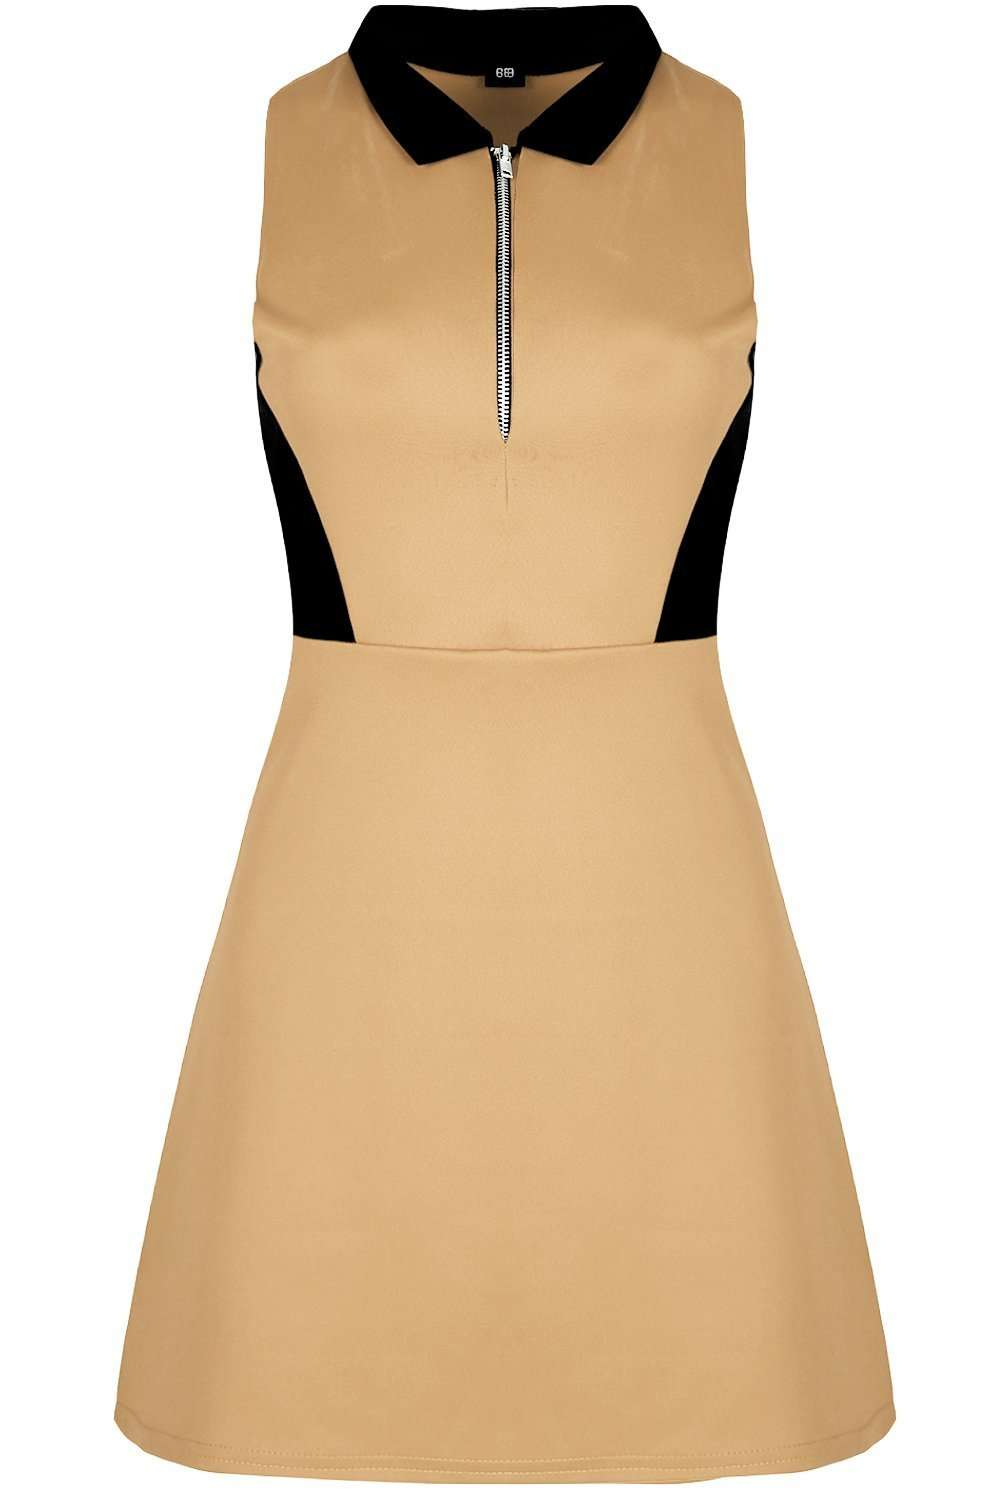 Frankie Sleeveless Paneled Shirt Dress - bejealous-com